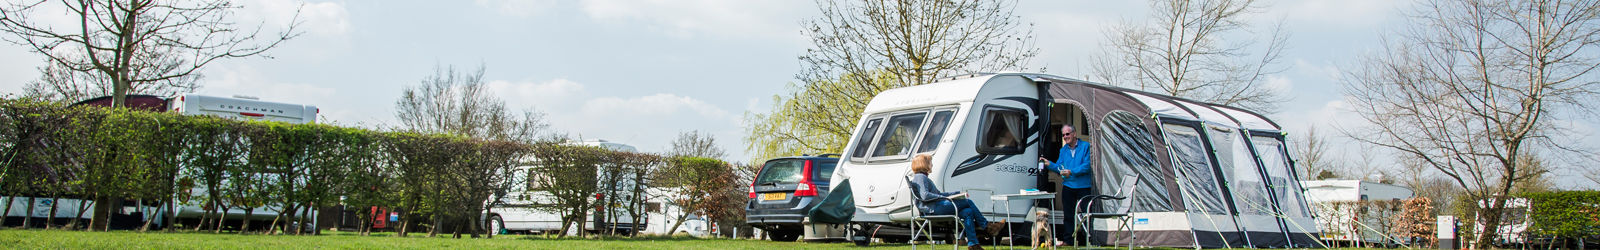 Euro touring and Caravan Insurance - Important things to remember